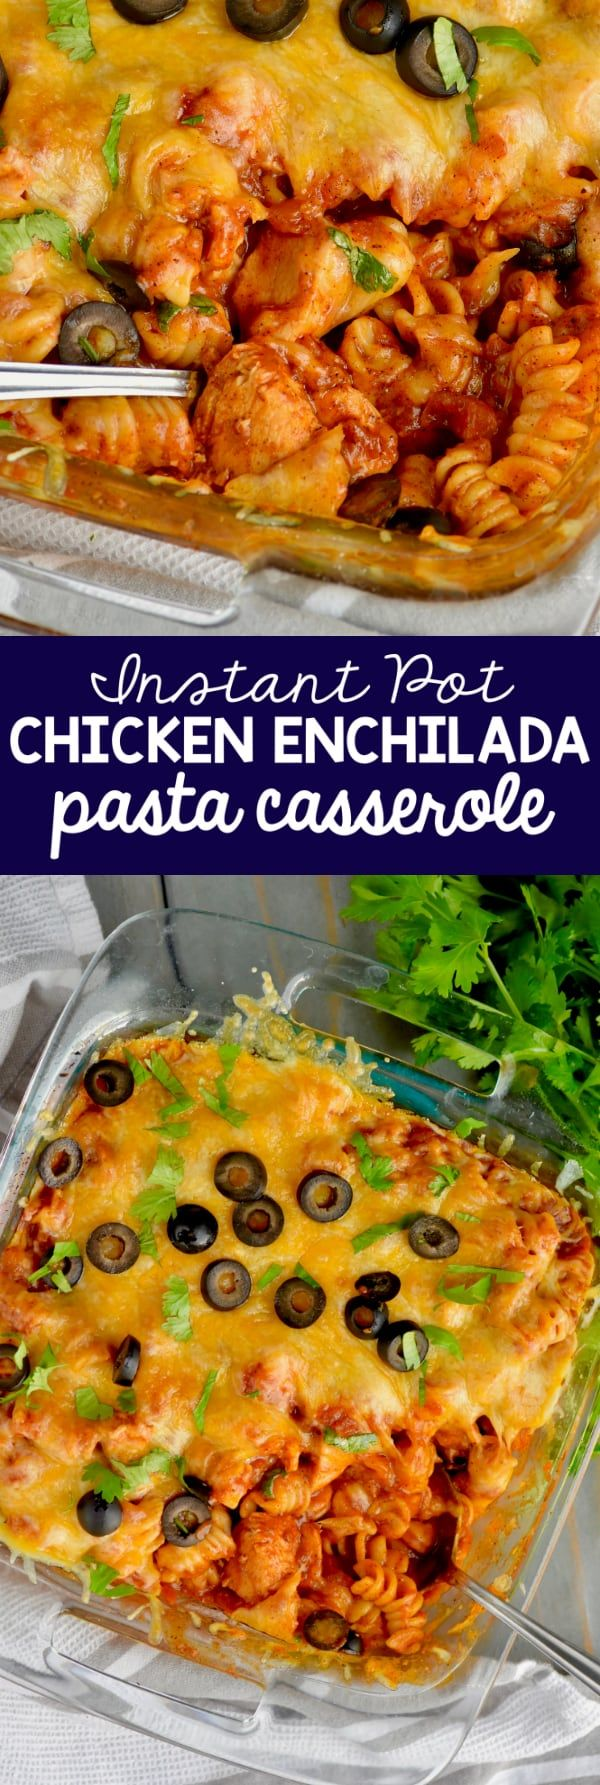 This Instant Pot Chicken Enchilada Pasta Casserole makes the perfect dinner! The hands on time for this dinner recipe is only about ten minutes!